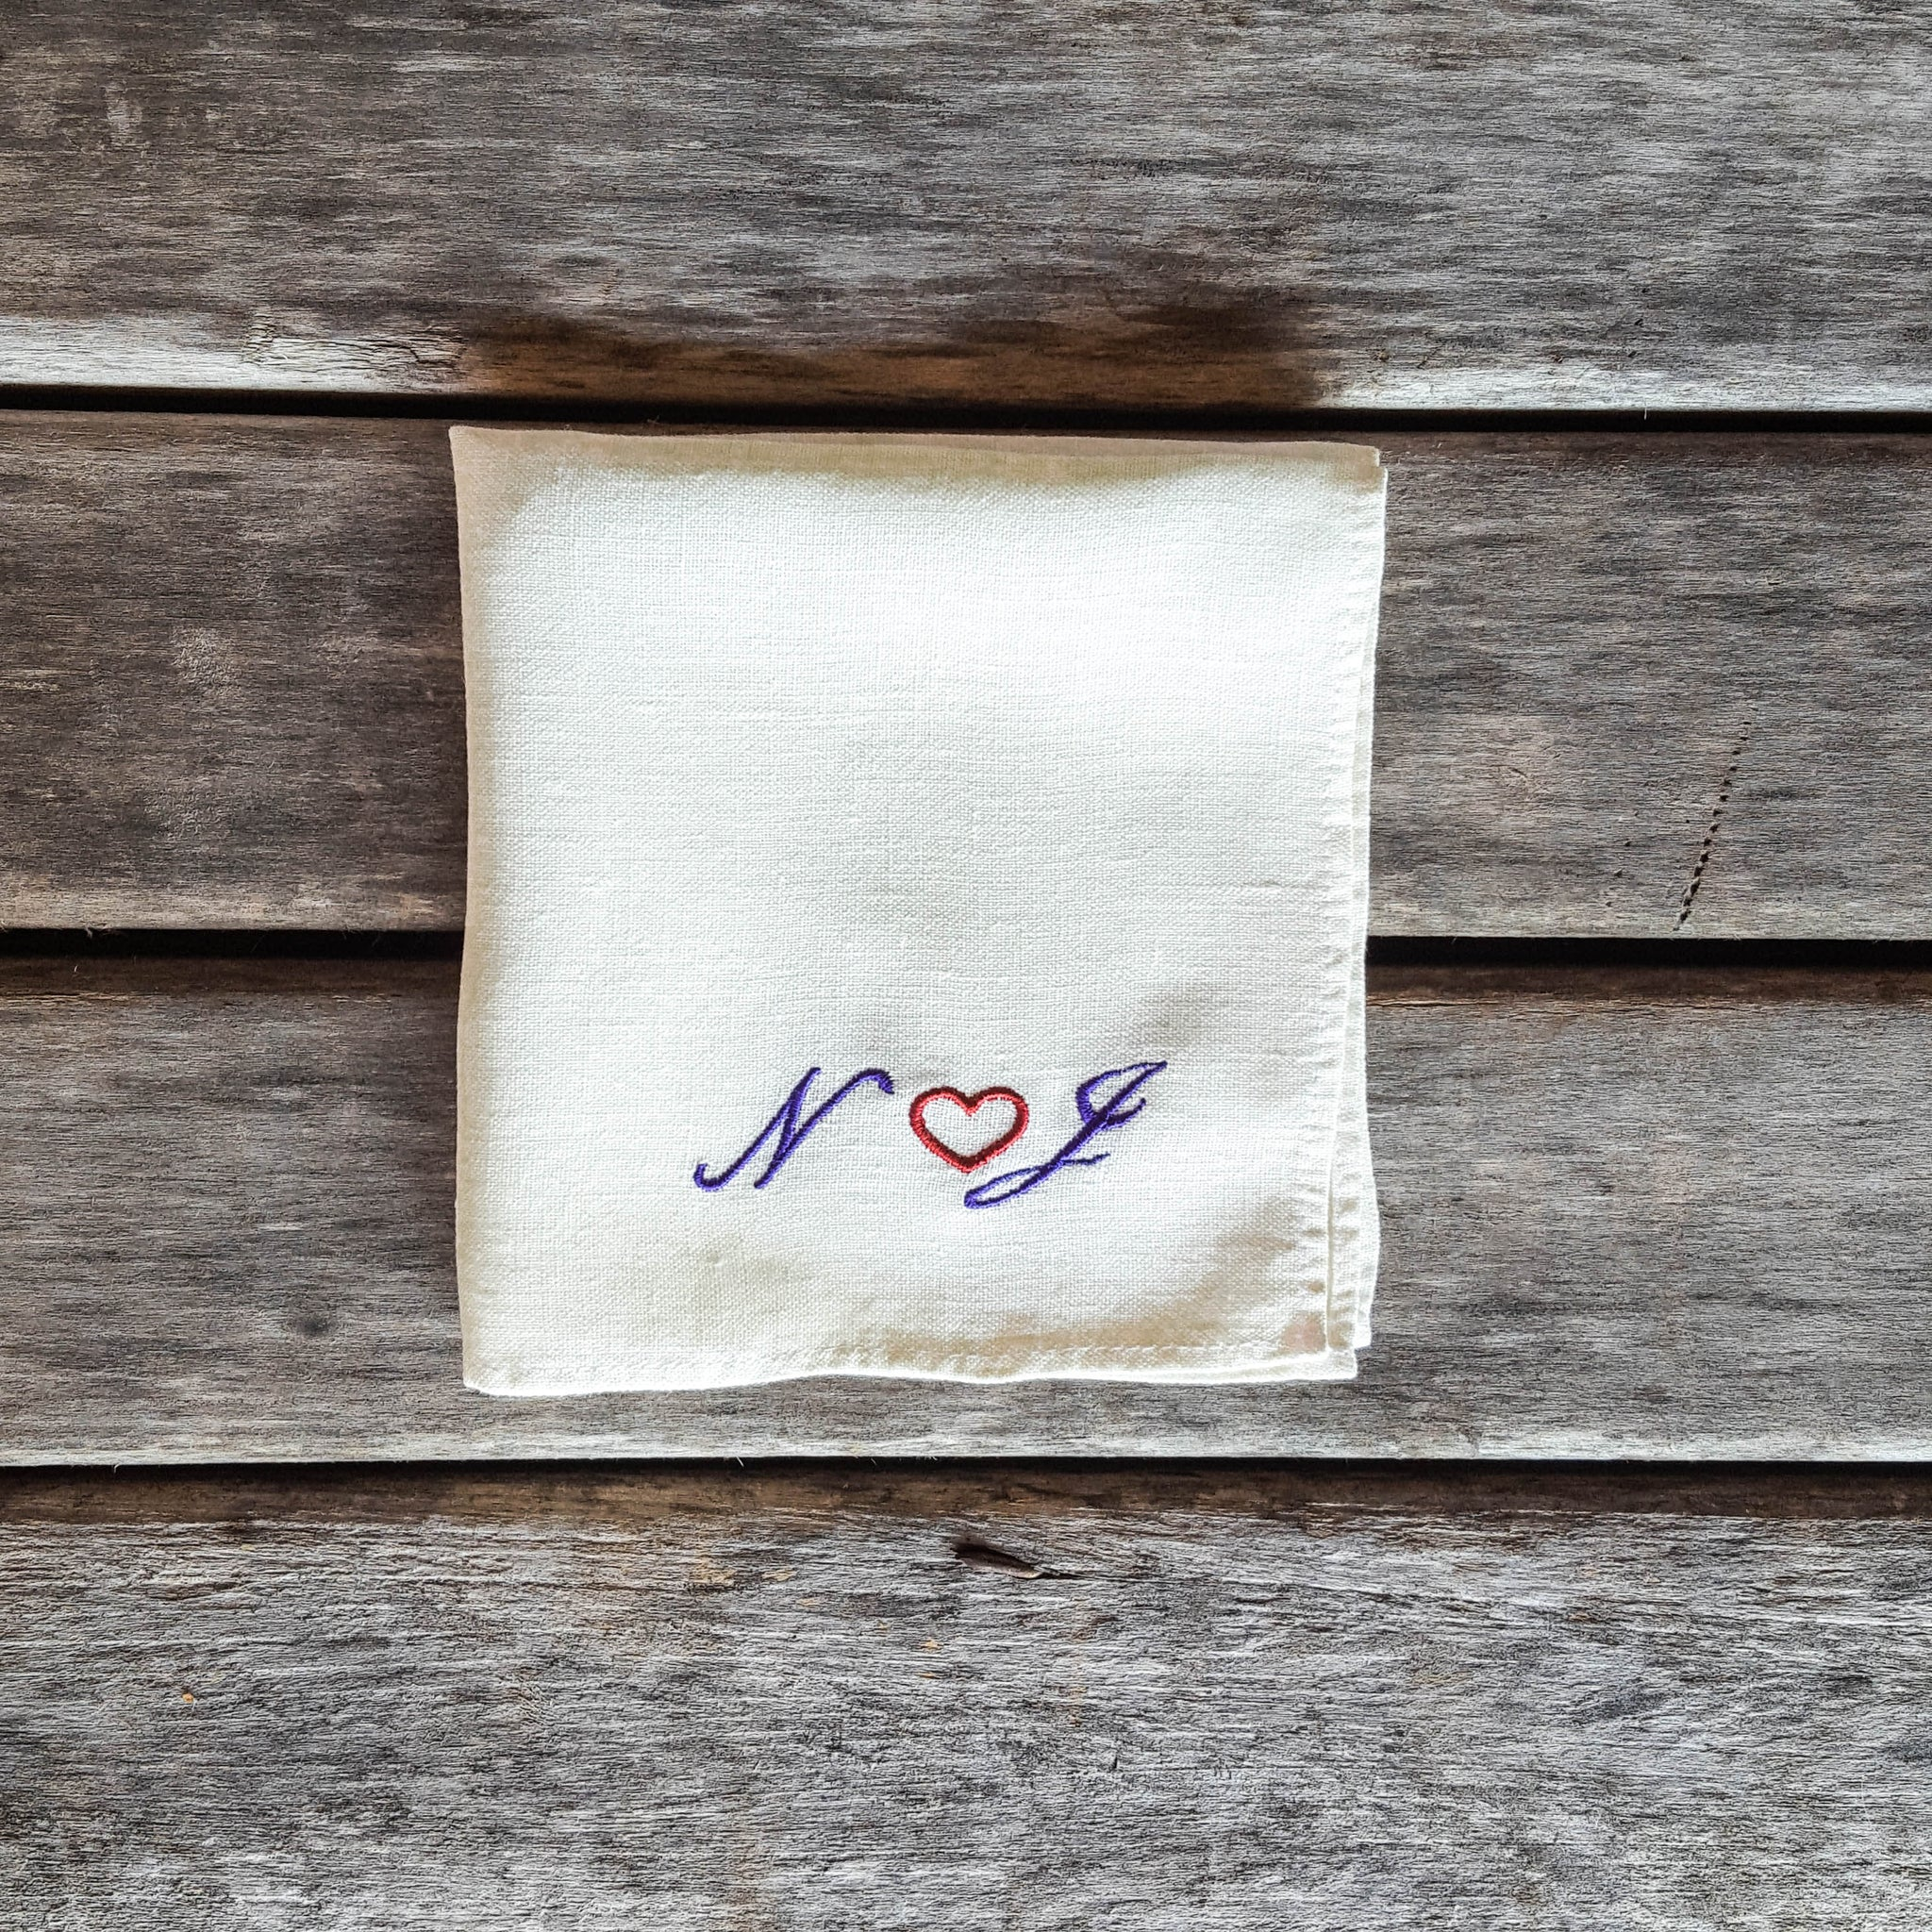 White personalized linen handkerchief with initials and heart